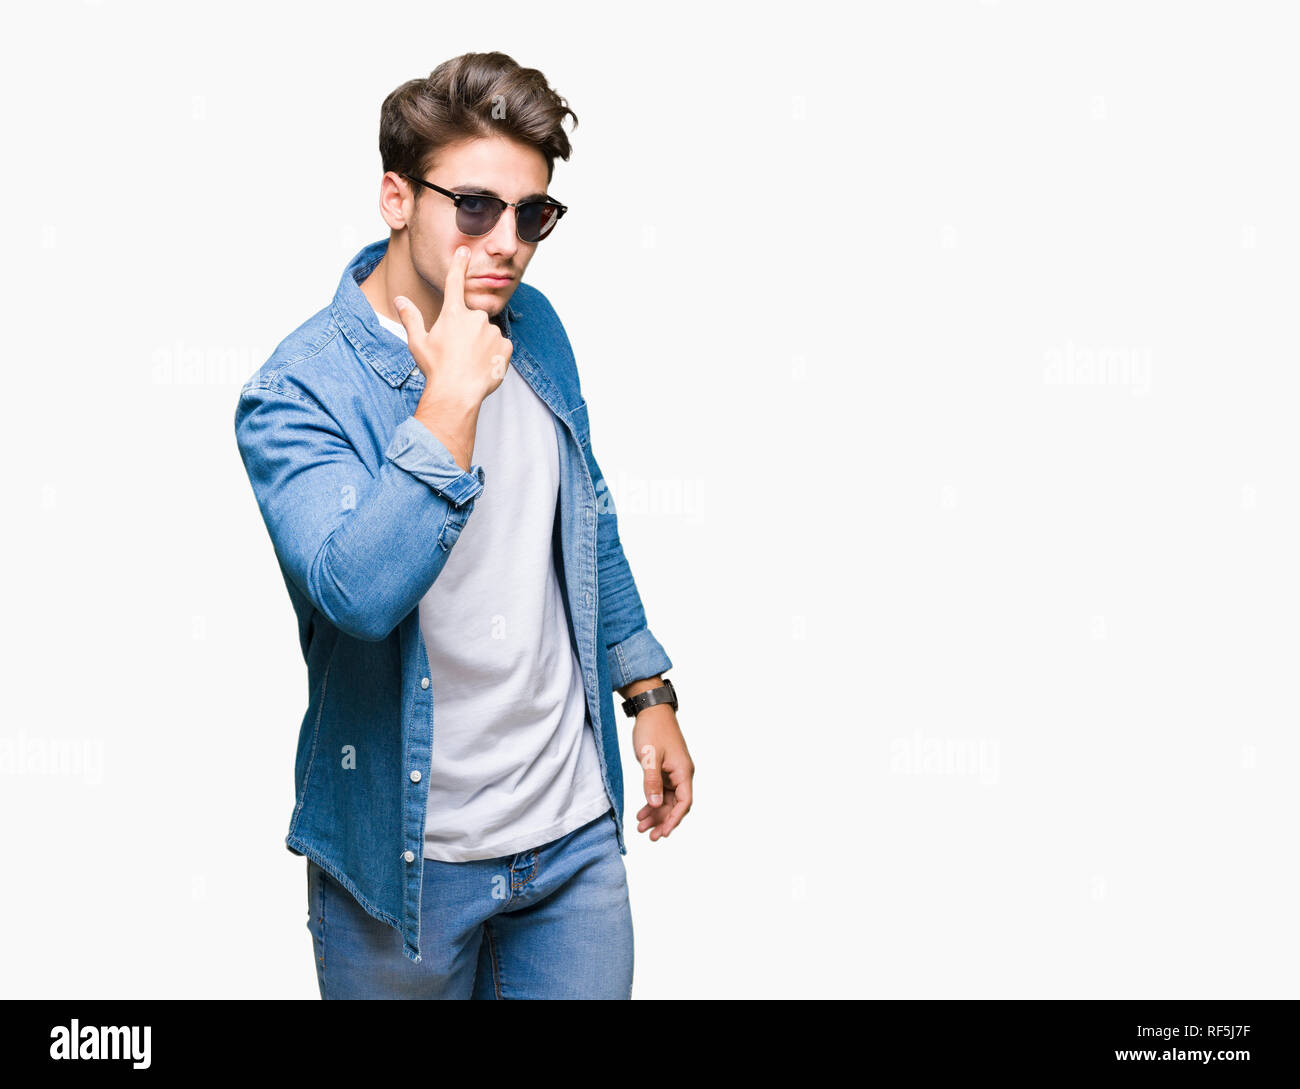 729a3c6cb3c Young handsome man wearing sunglasses over isolated background Pointing to  the eye watching you gesture